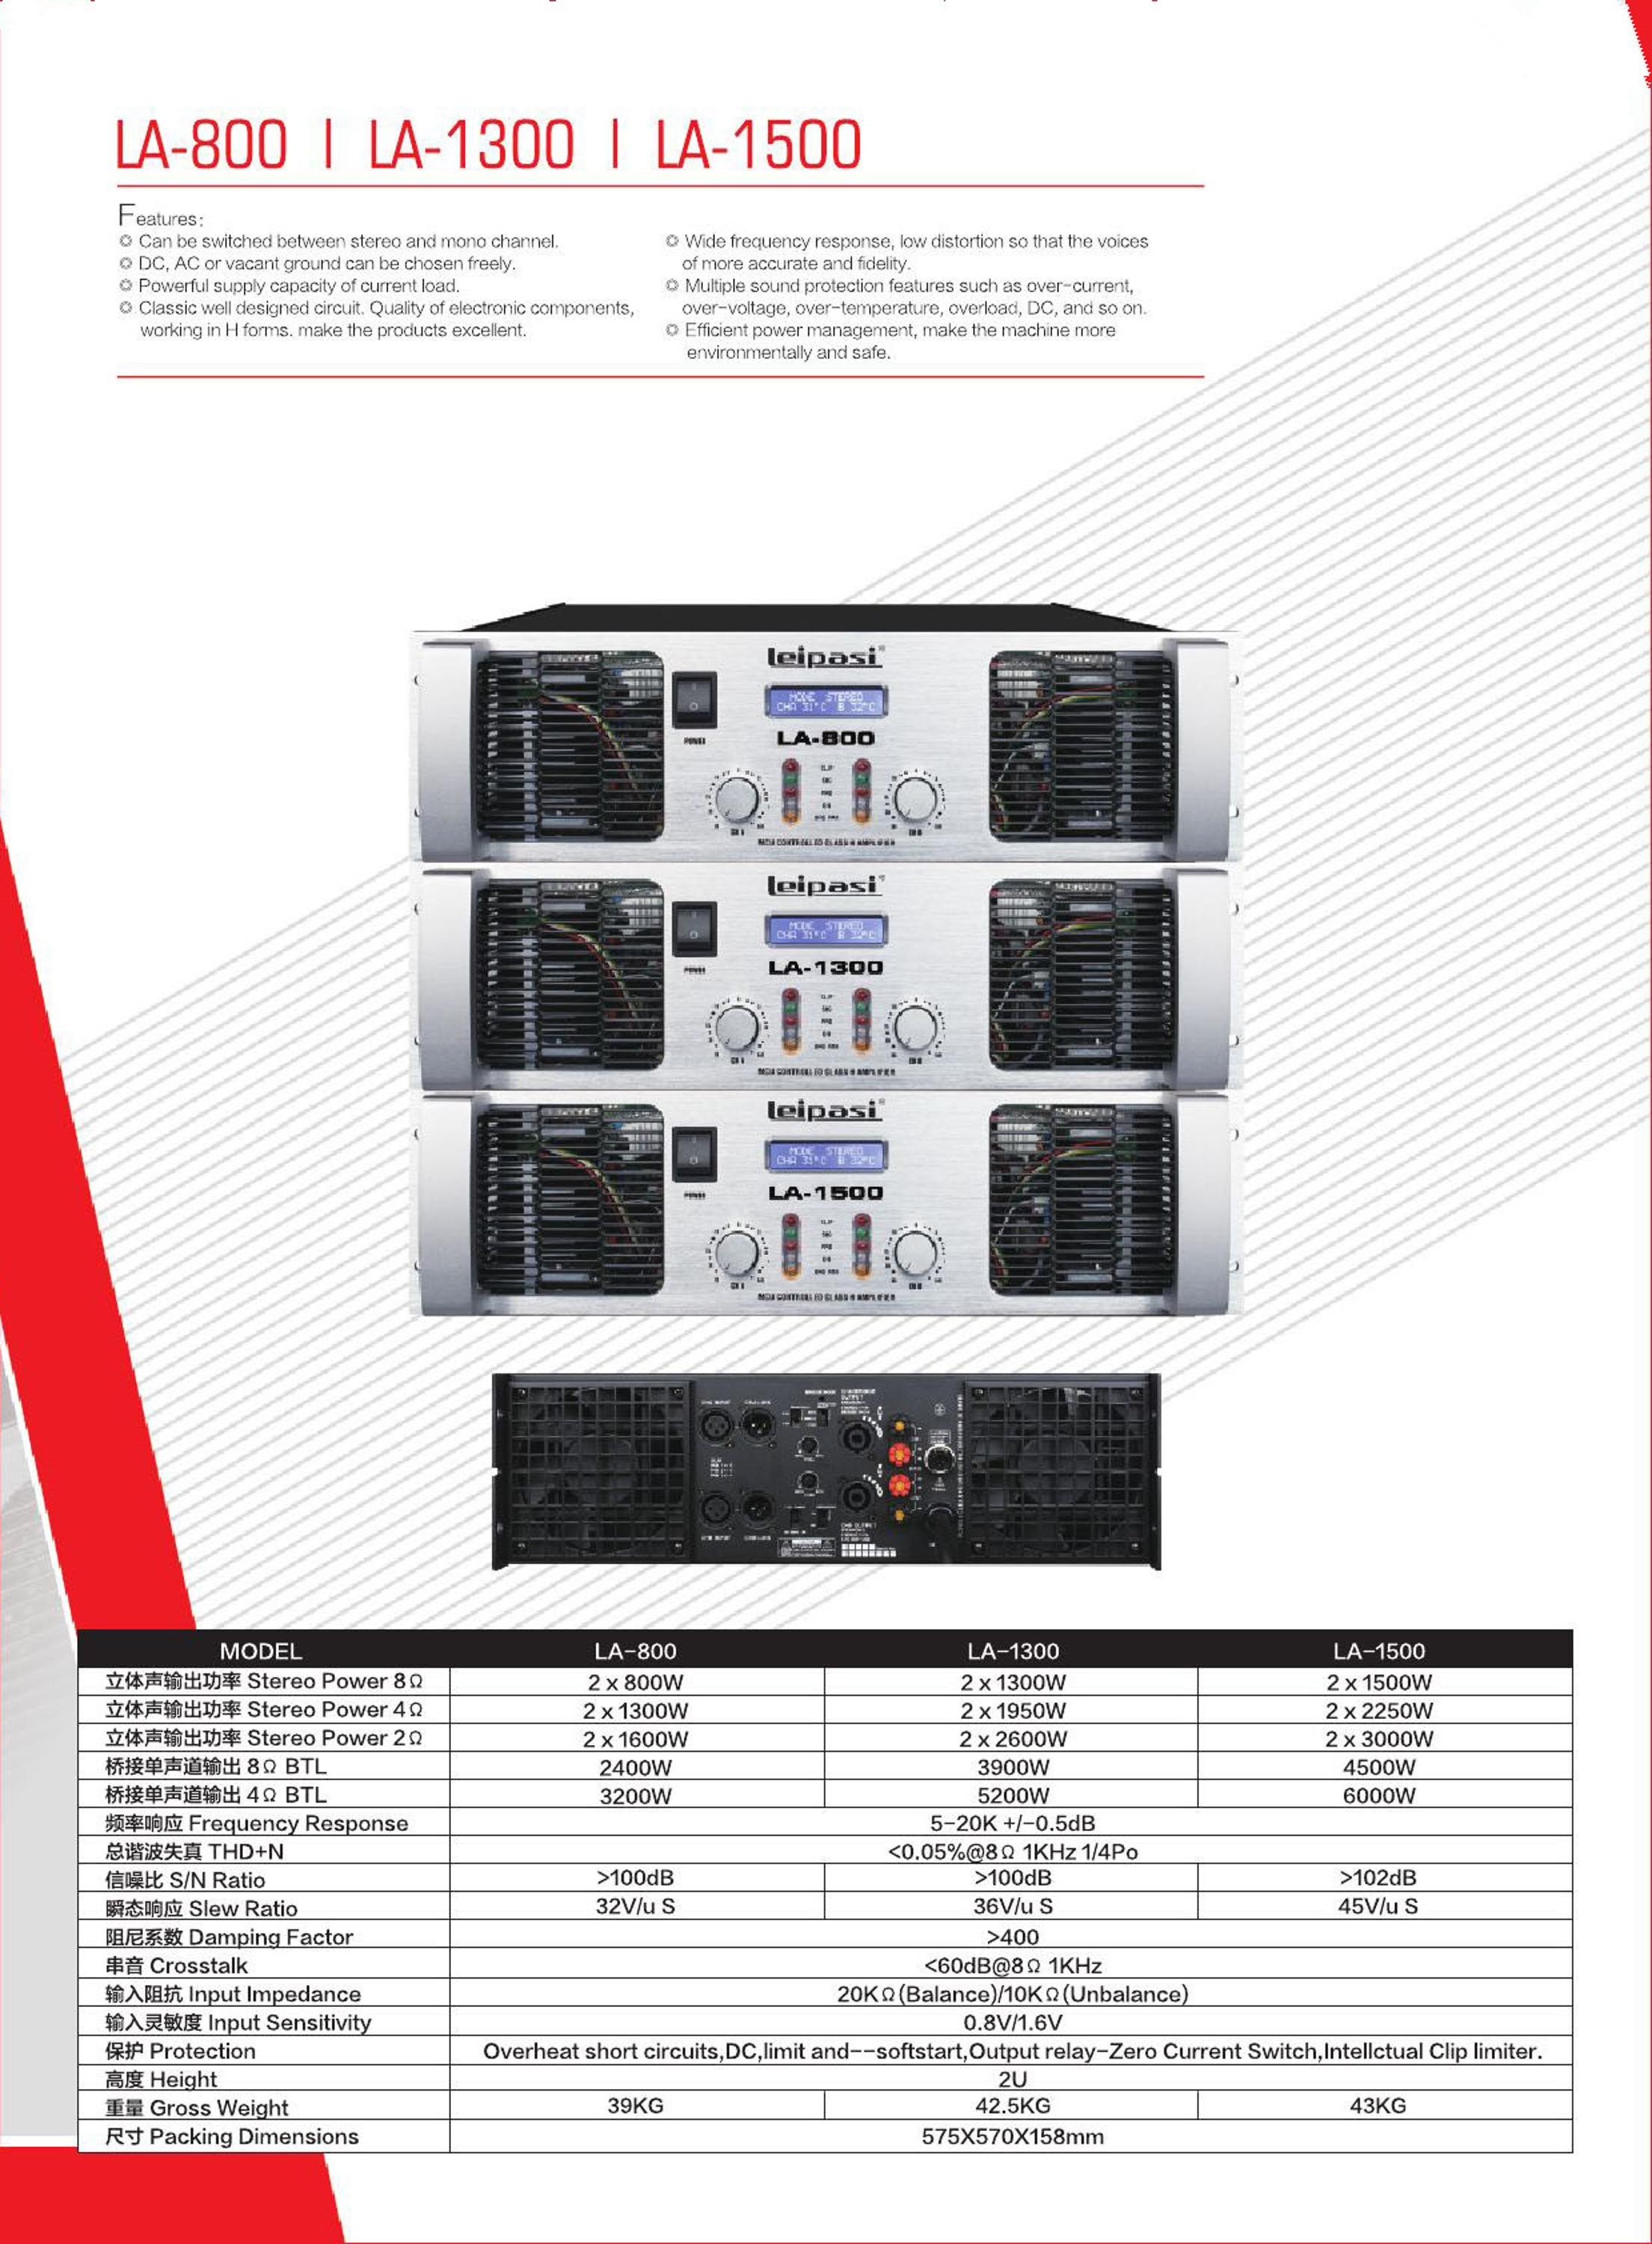 Leipasi Brand Name La 1500 2 1500w Professional High Power Stereo Amplifier Schematic With Led Creen